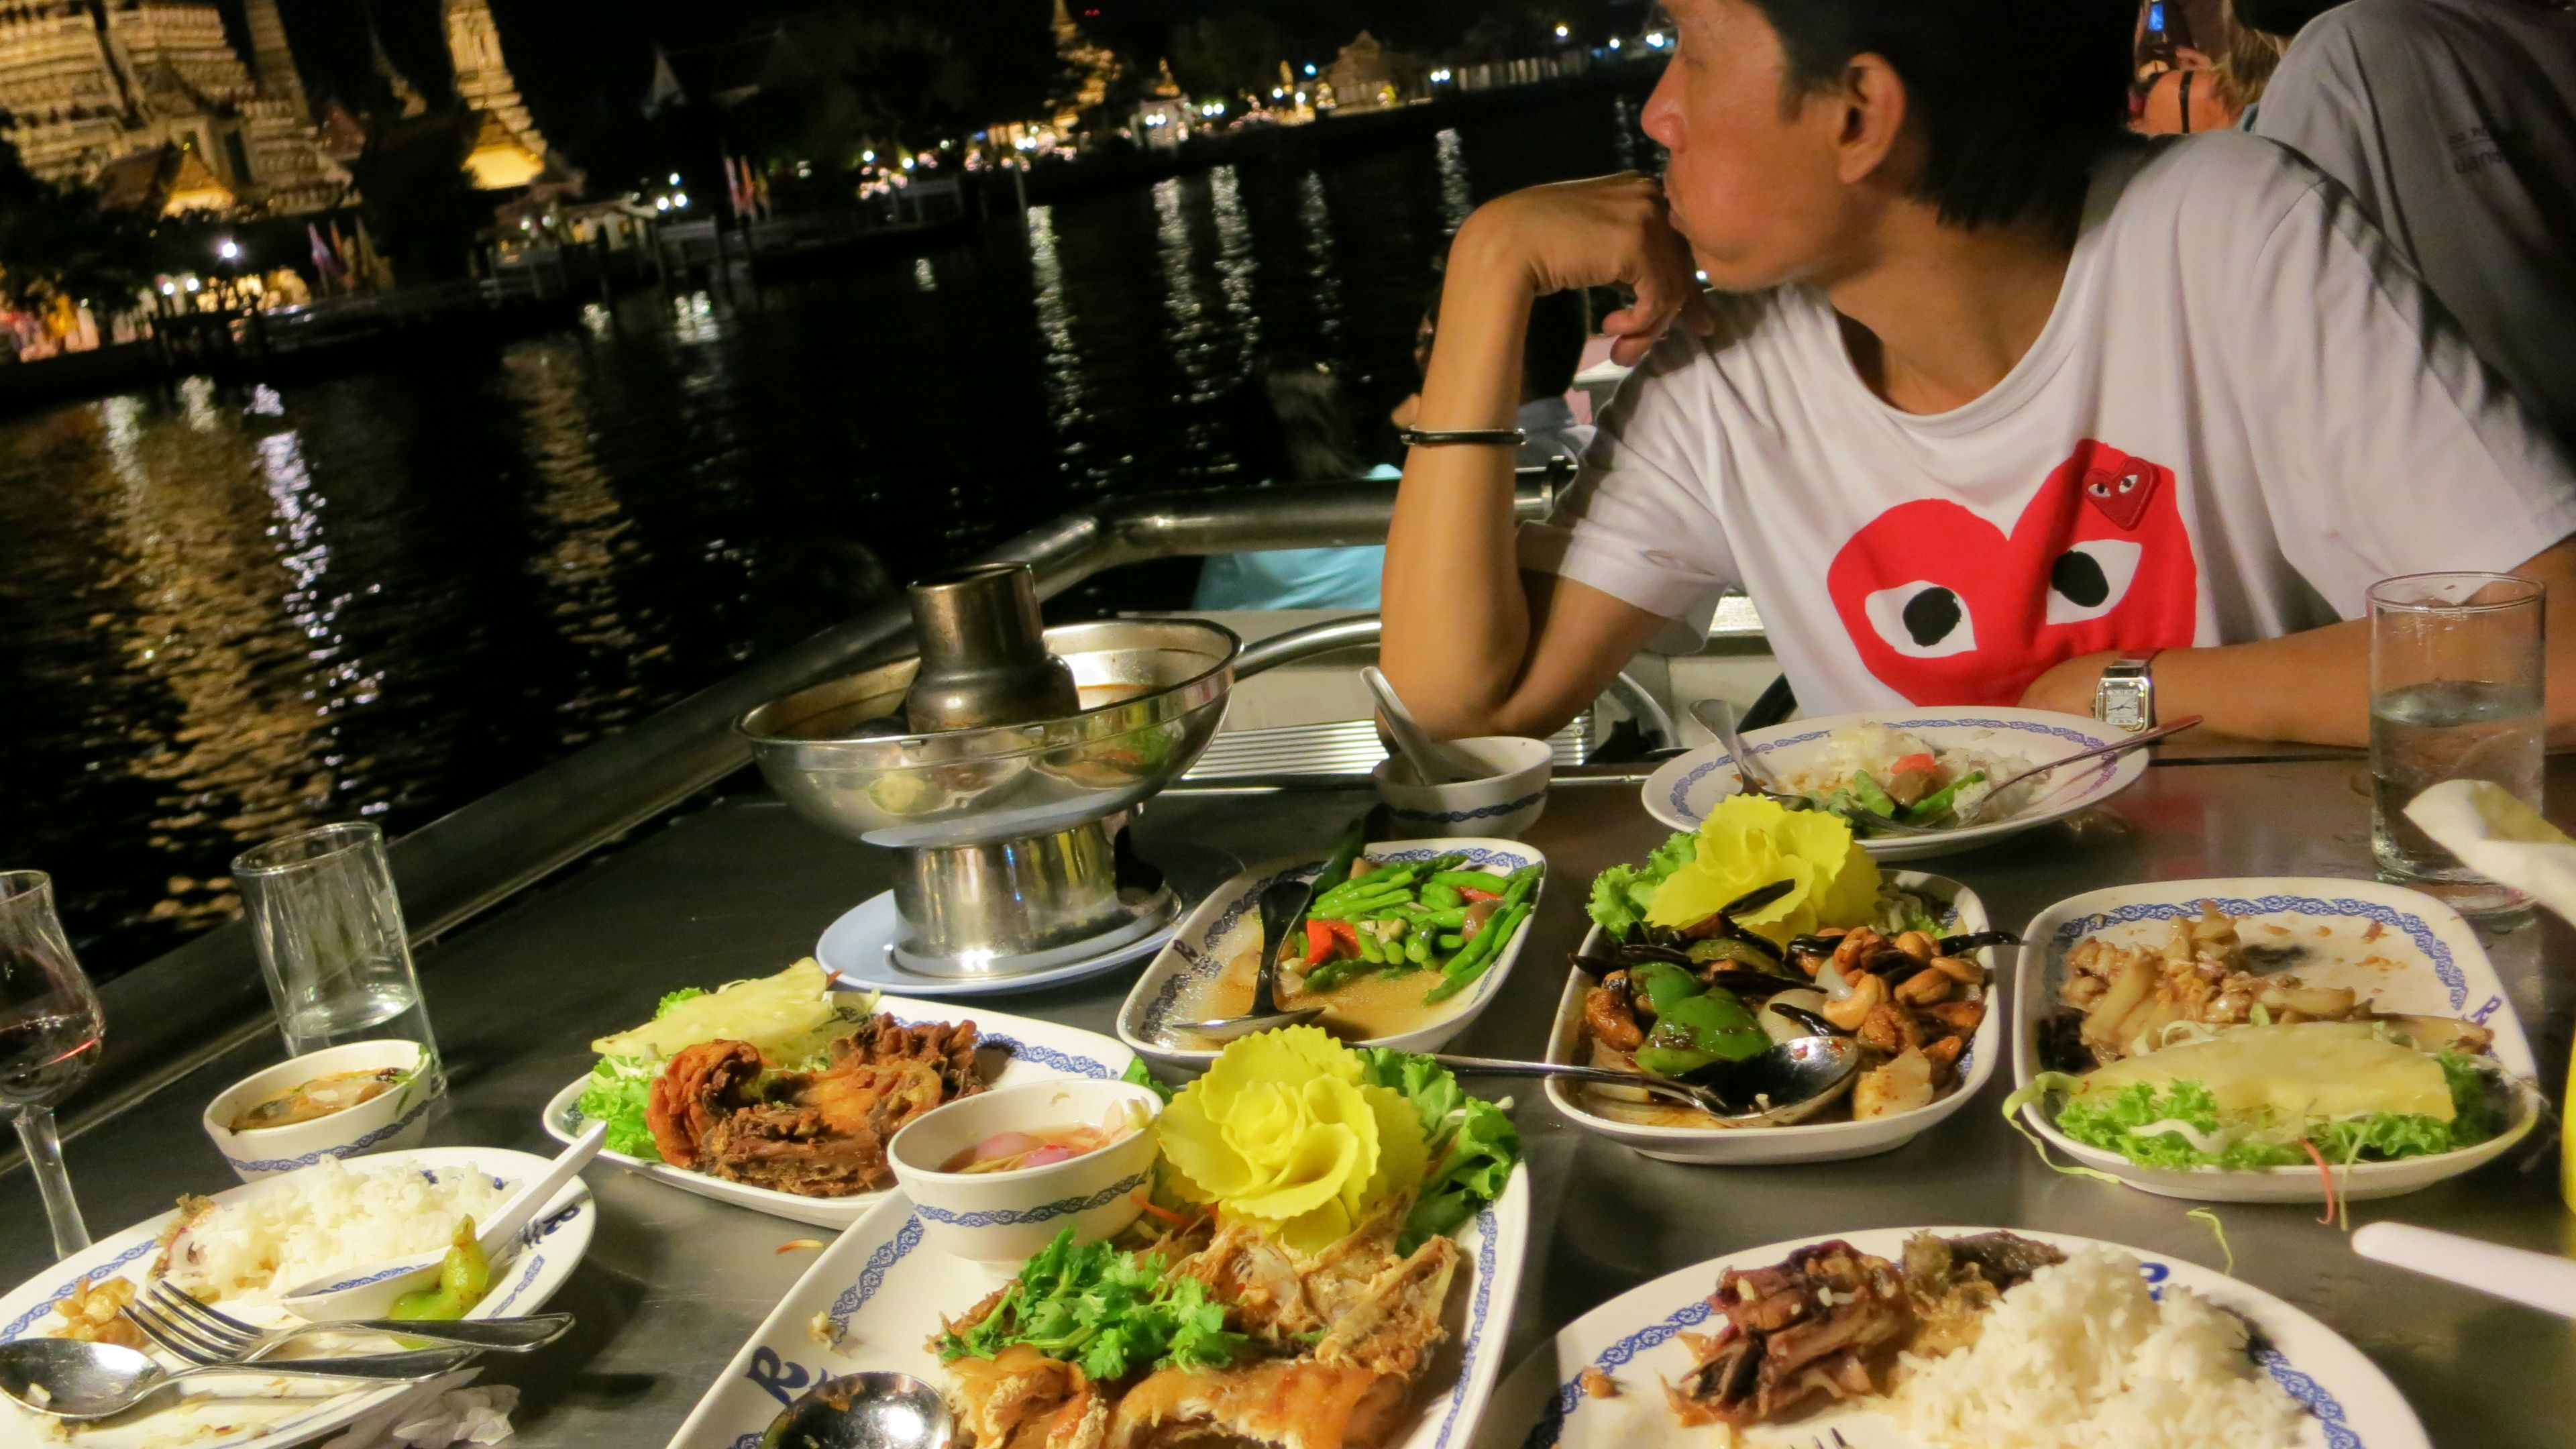 Man seated at dinner table with several dishes observing skyline.